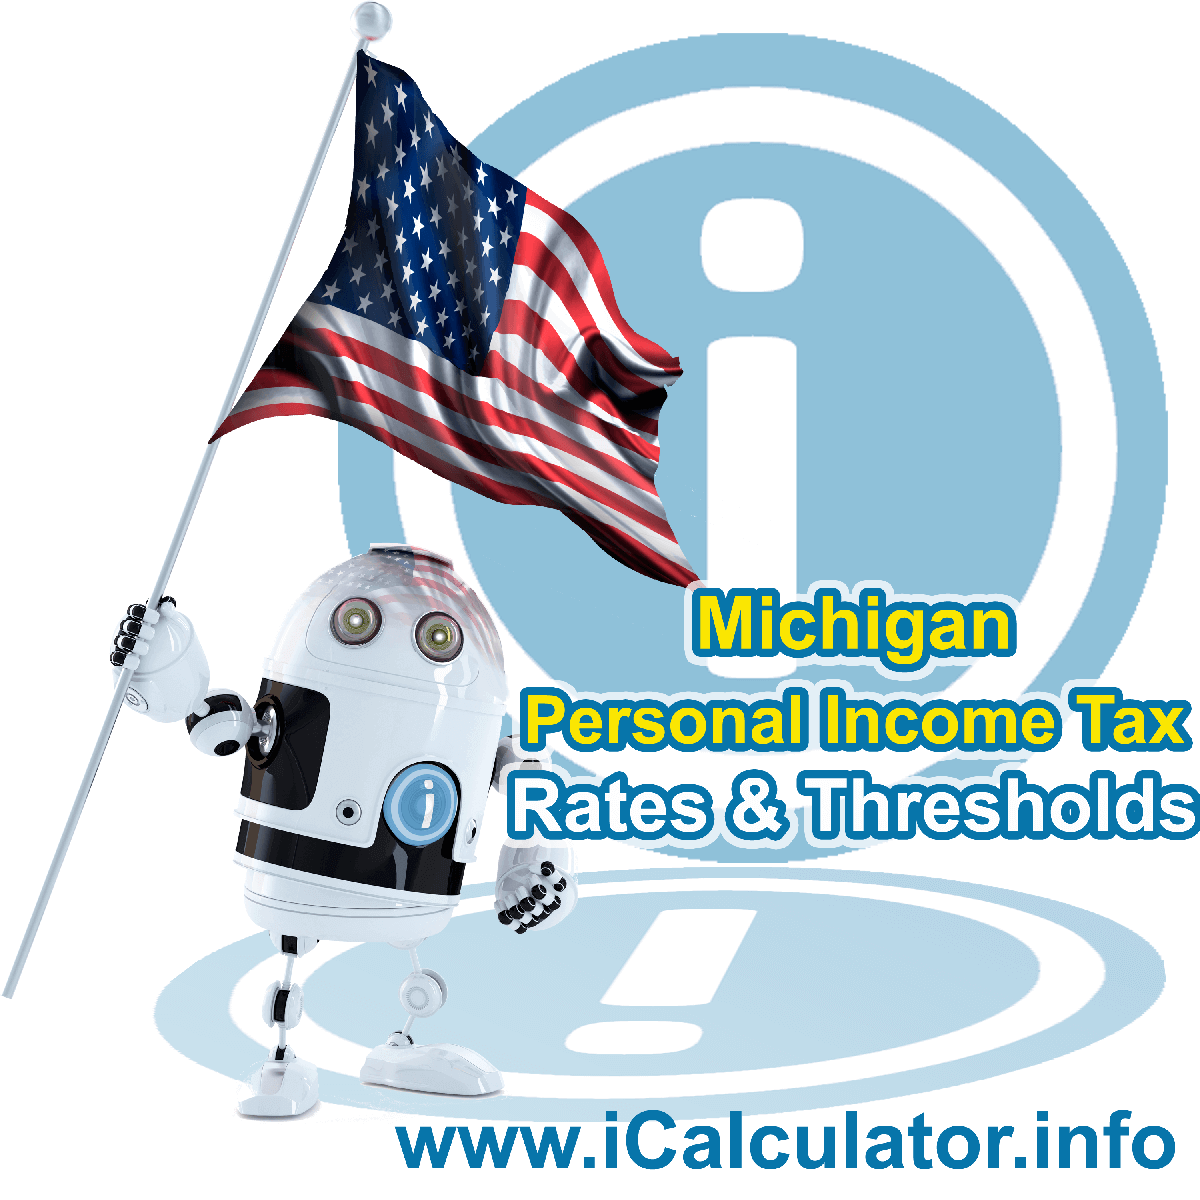 Michigan State Tax Tables 2020. This image displays details of the Michigan State Tax Tables for the 2020 tax return year which is provided in support of the 2020 US Tax Calculator